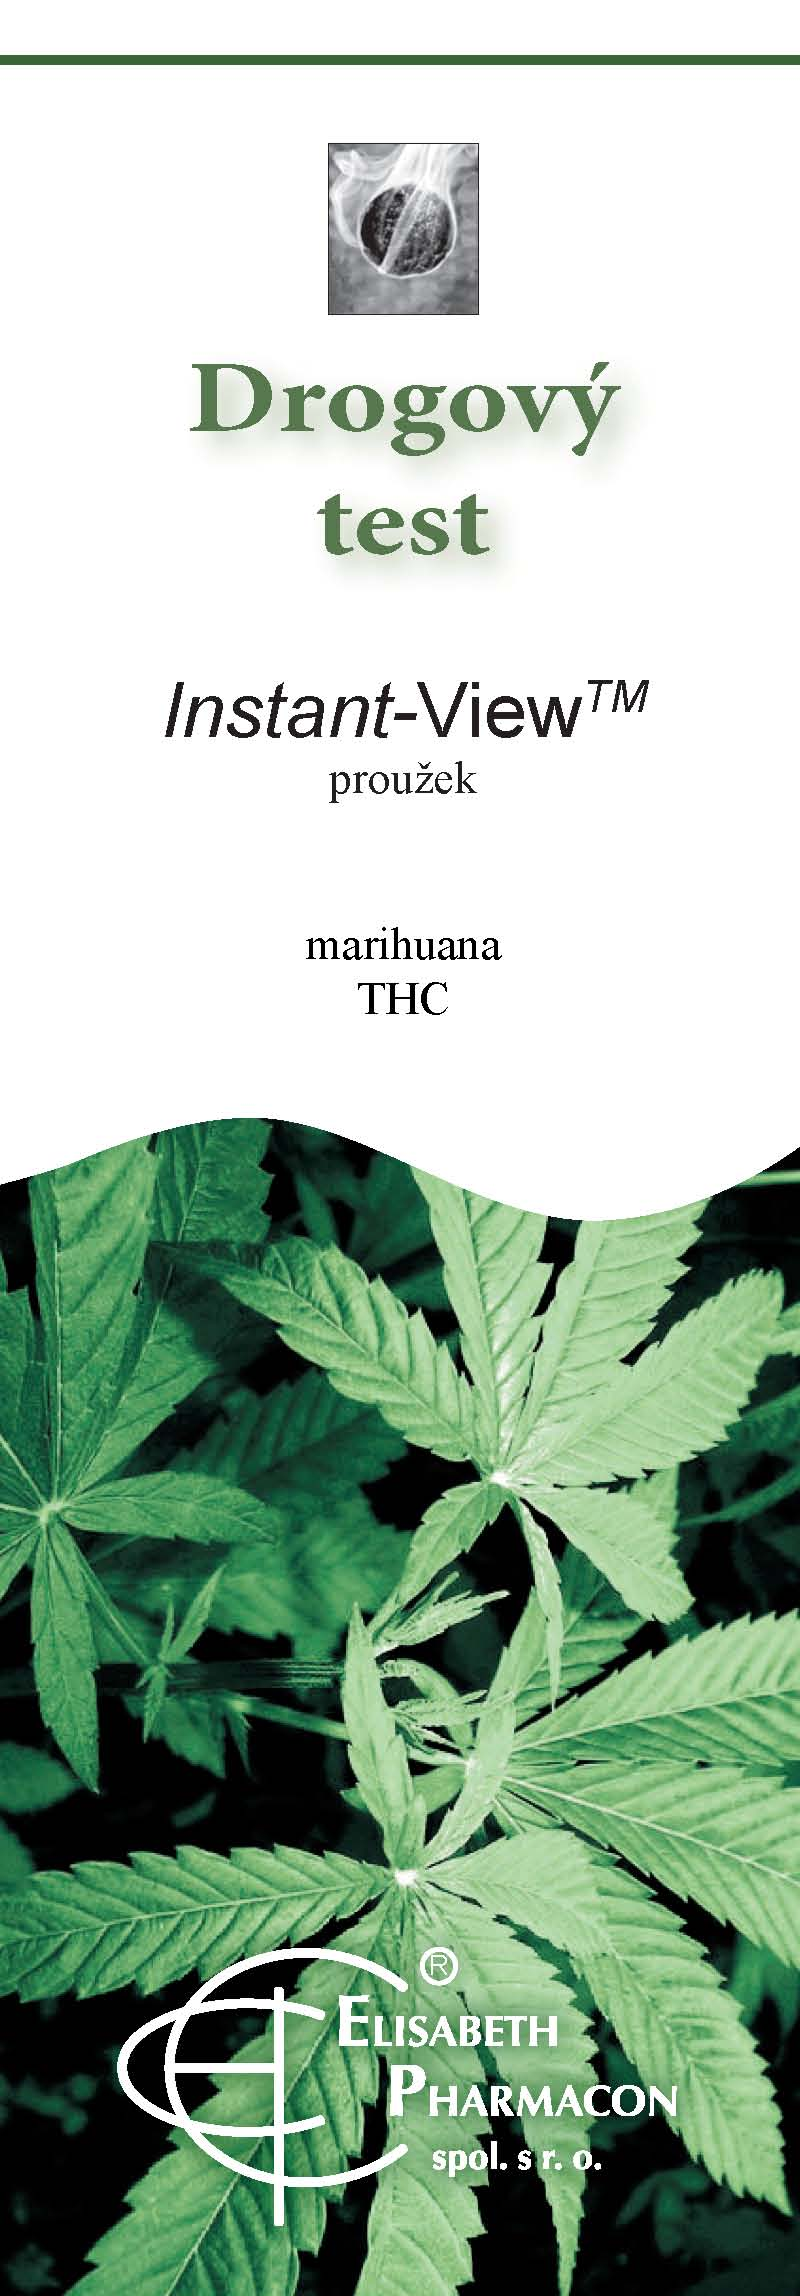 Drogový test THC - mariuhany Instant view